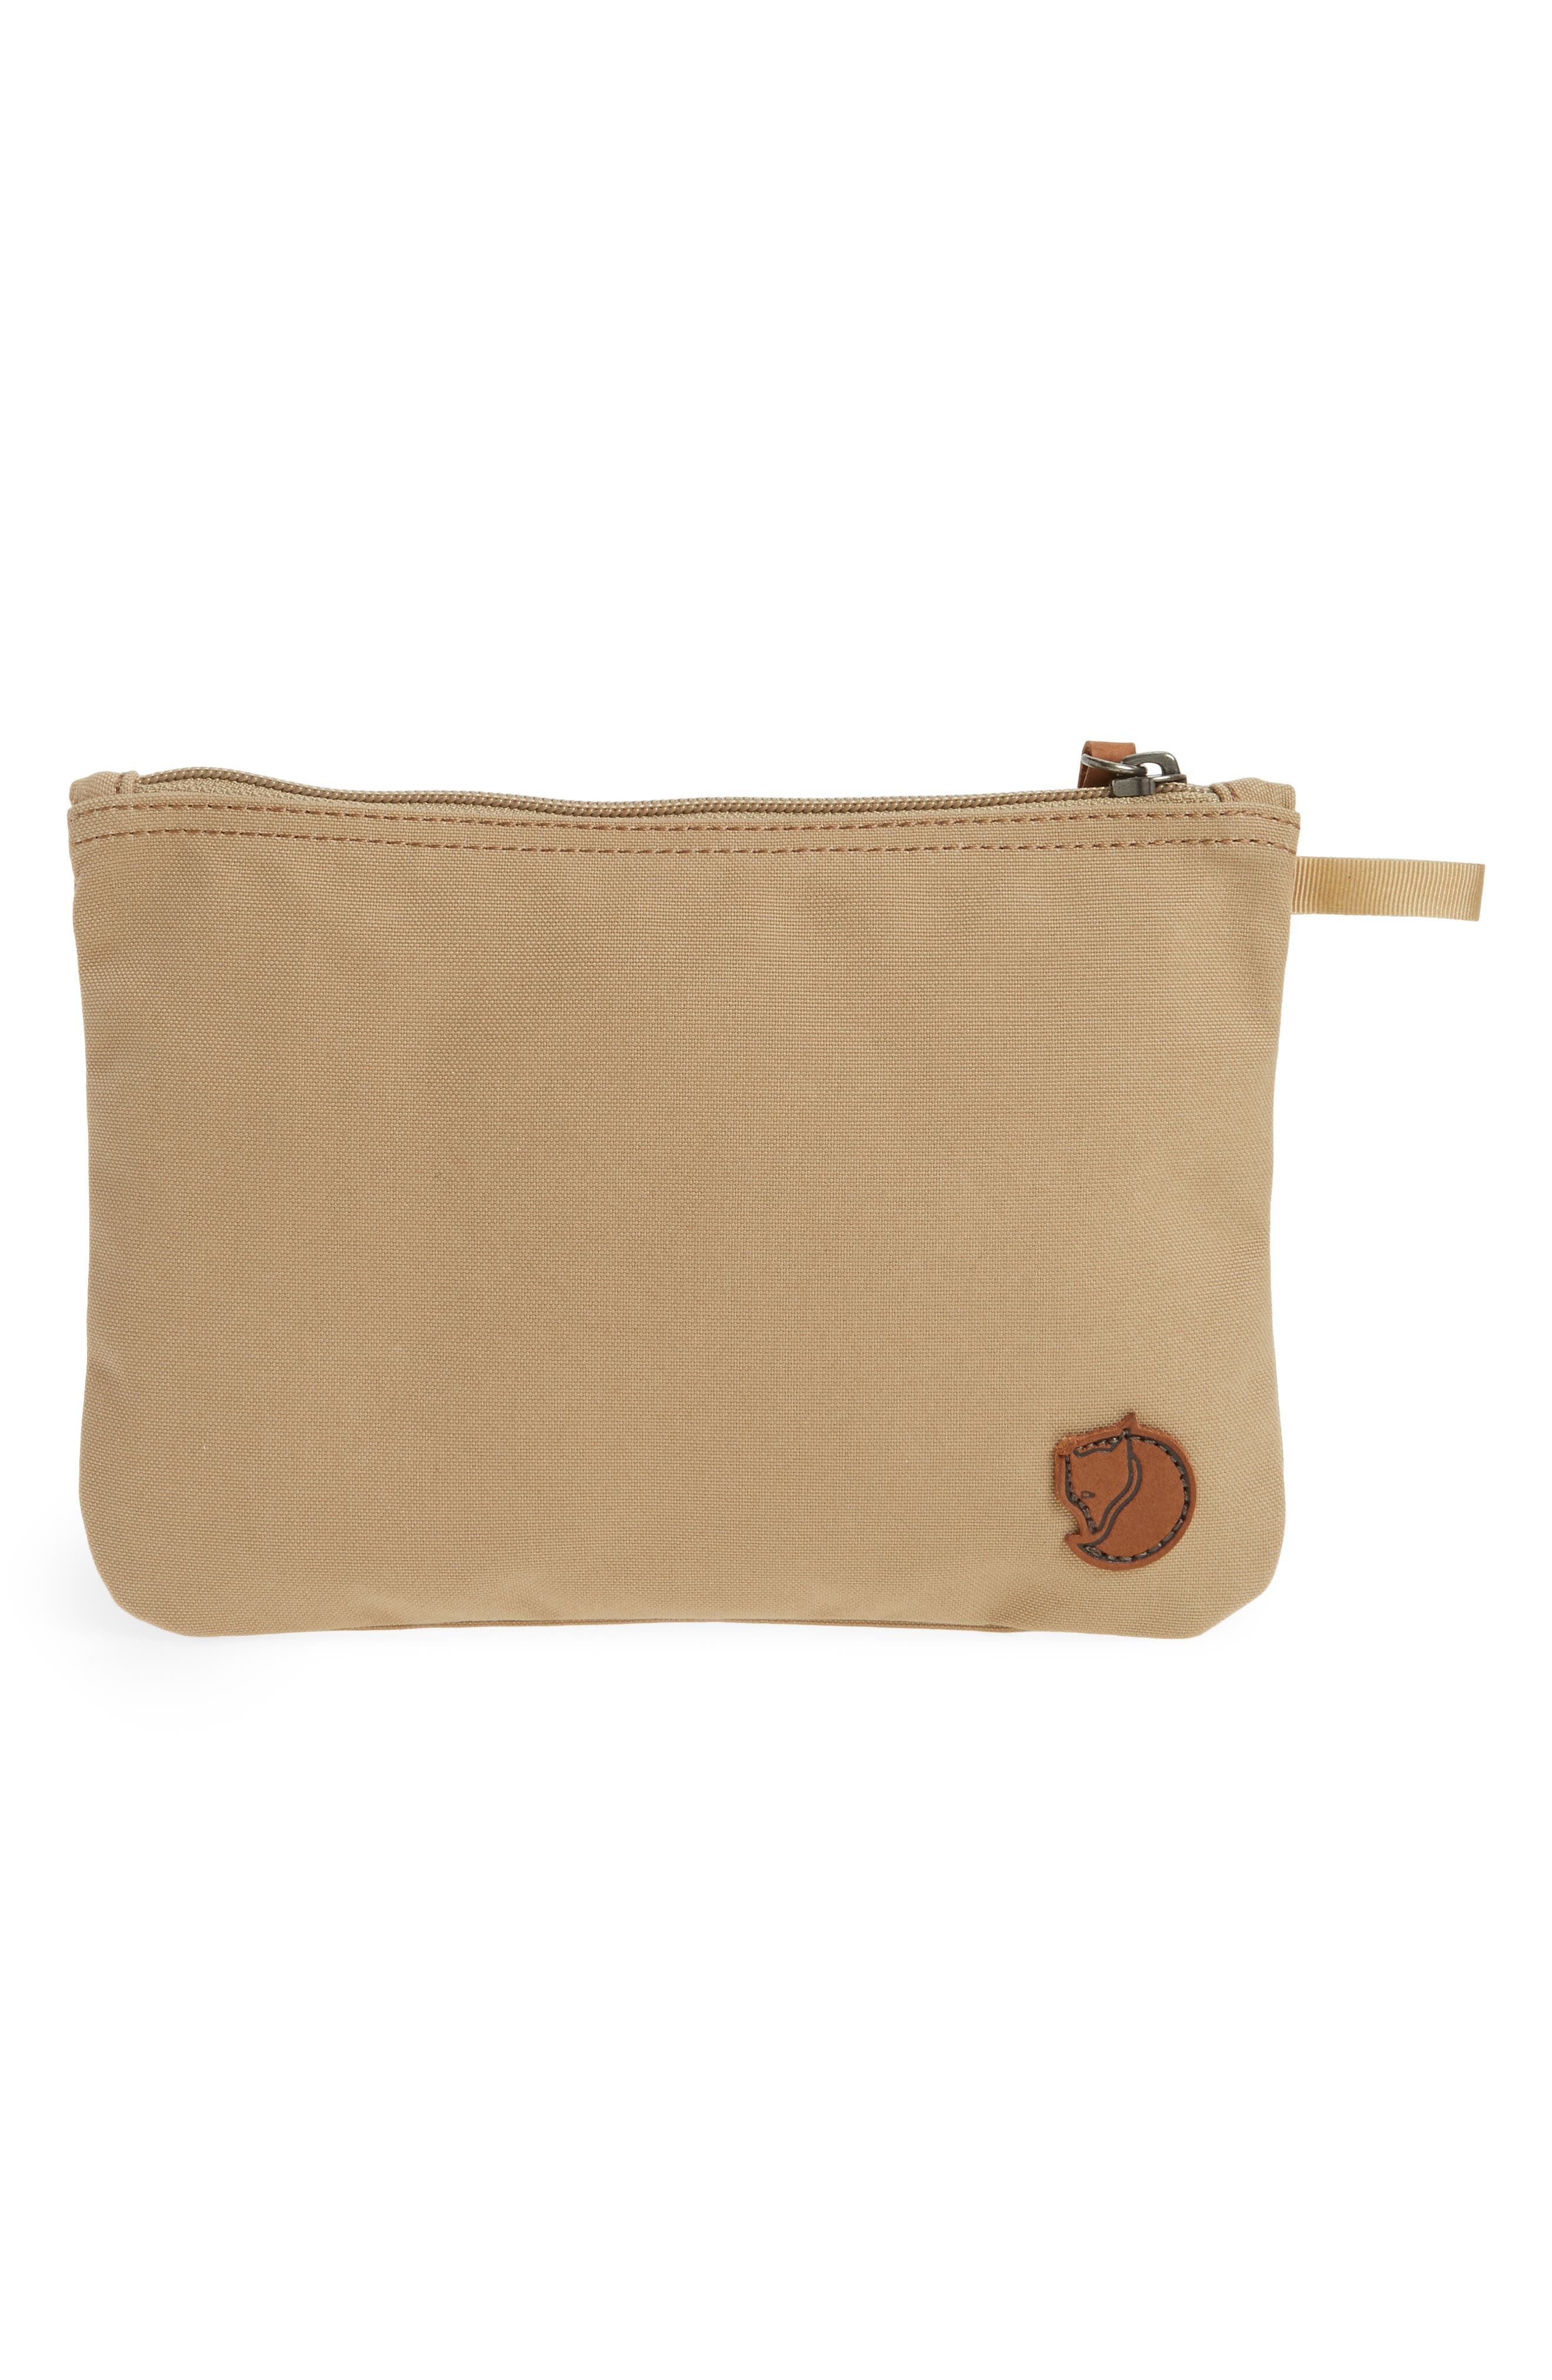 Gear Water-Resistant Pocket Pouch,                             Alternate thumbnail 2, color,                             Sand